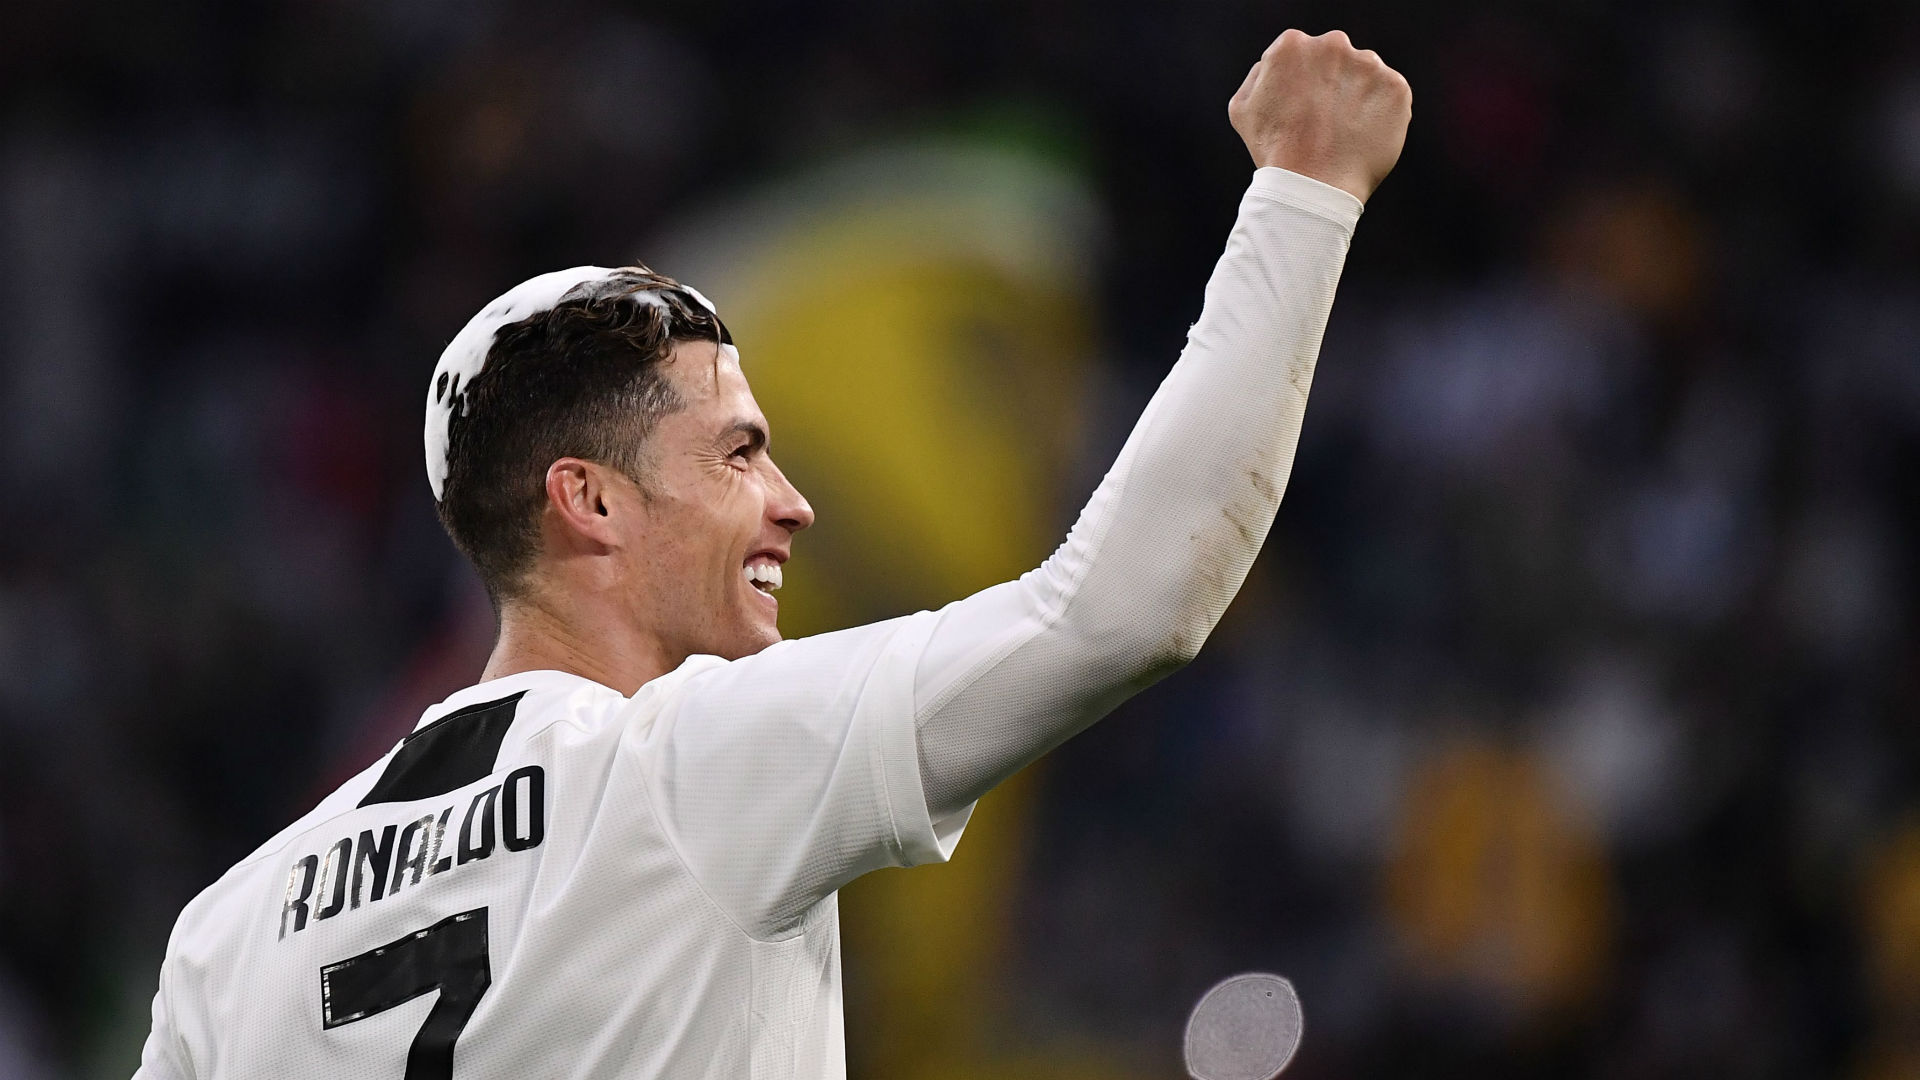 Juventus sports chief Paratici: Never a doubt about Ronaldo commitment